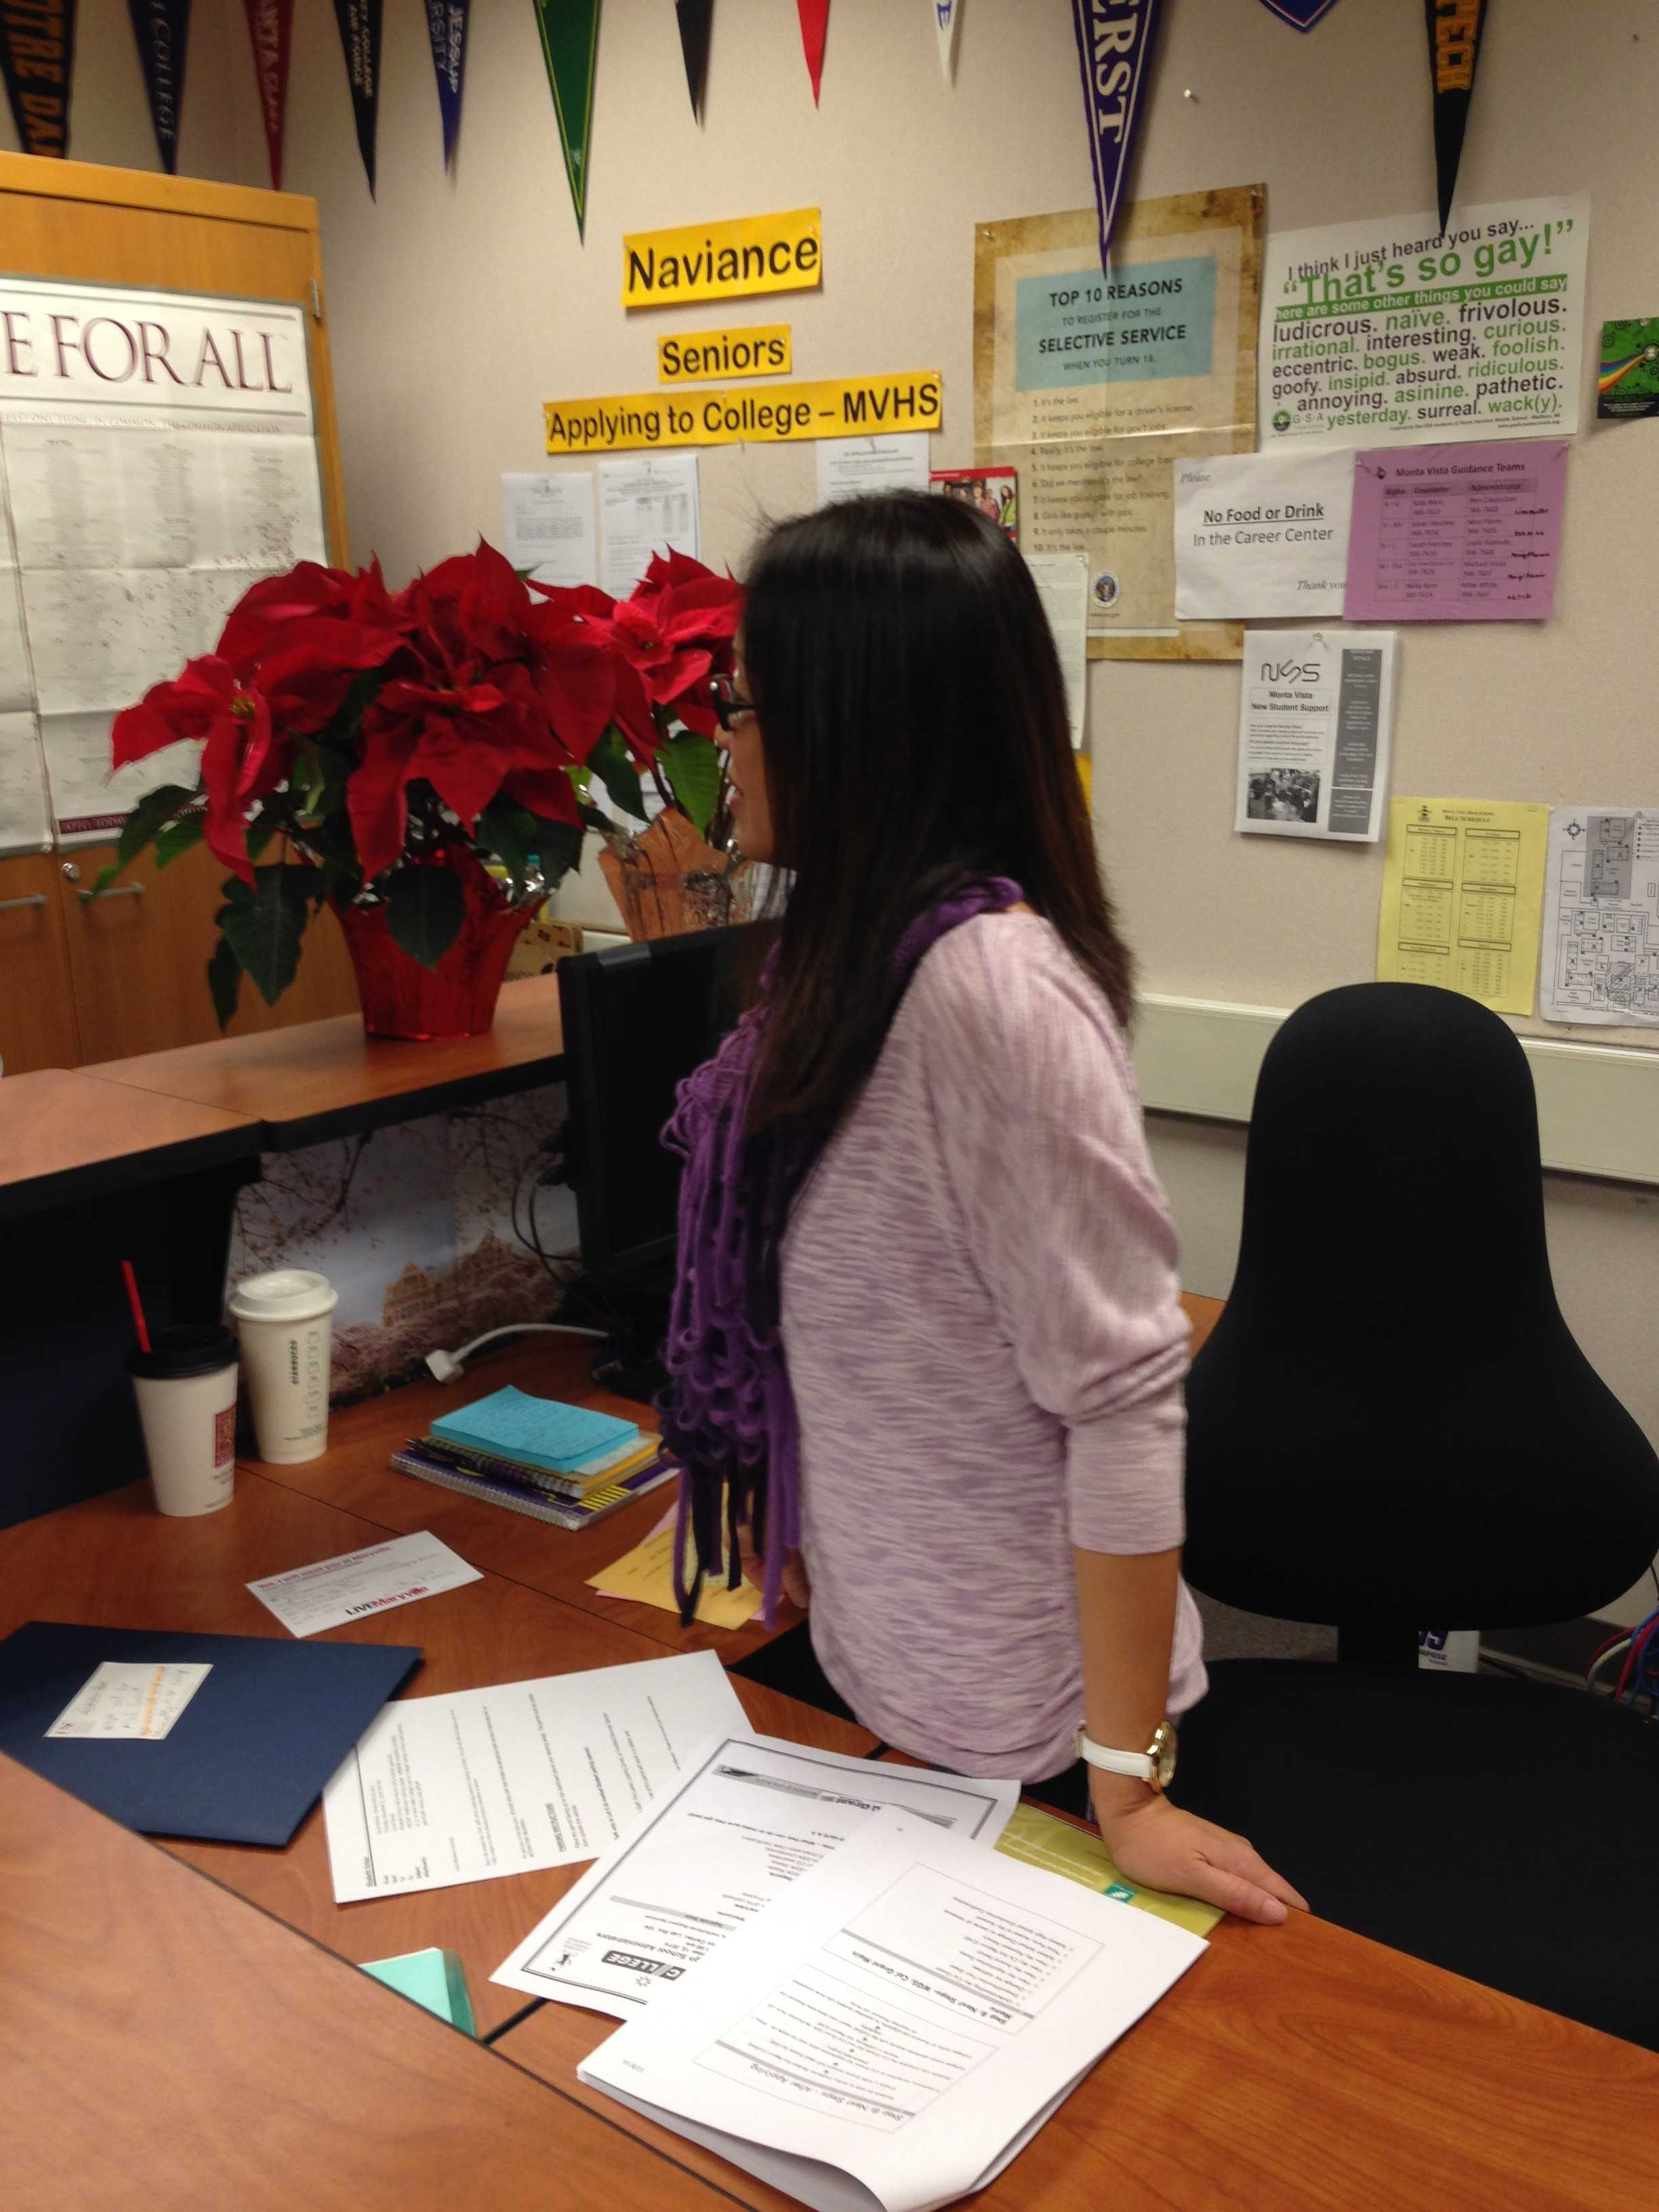 Career Center liaison, Le-Xuan Cao, answered the question of a student regarding college applications. The Career Center is the best place for attaining information apropos of colleges.